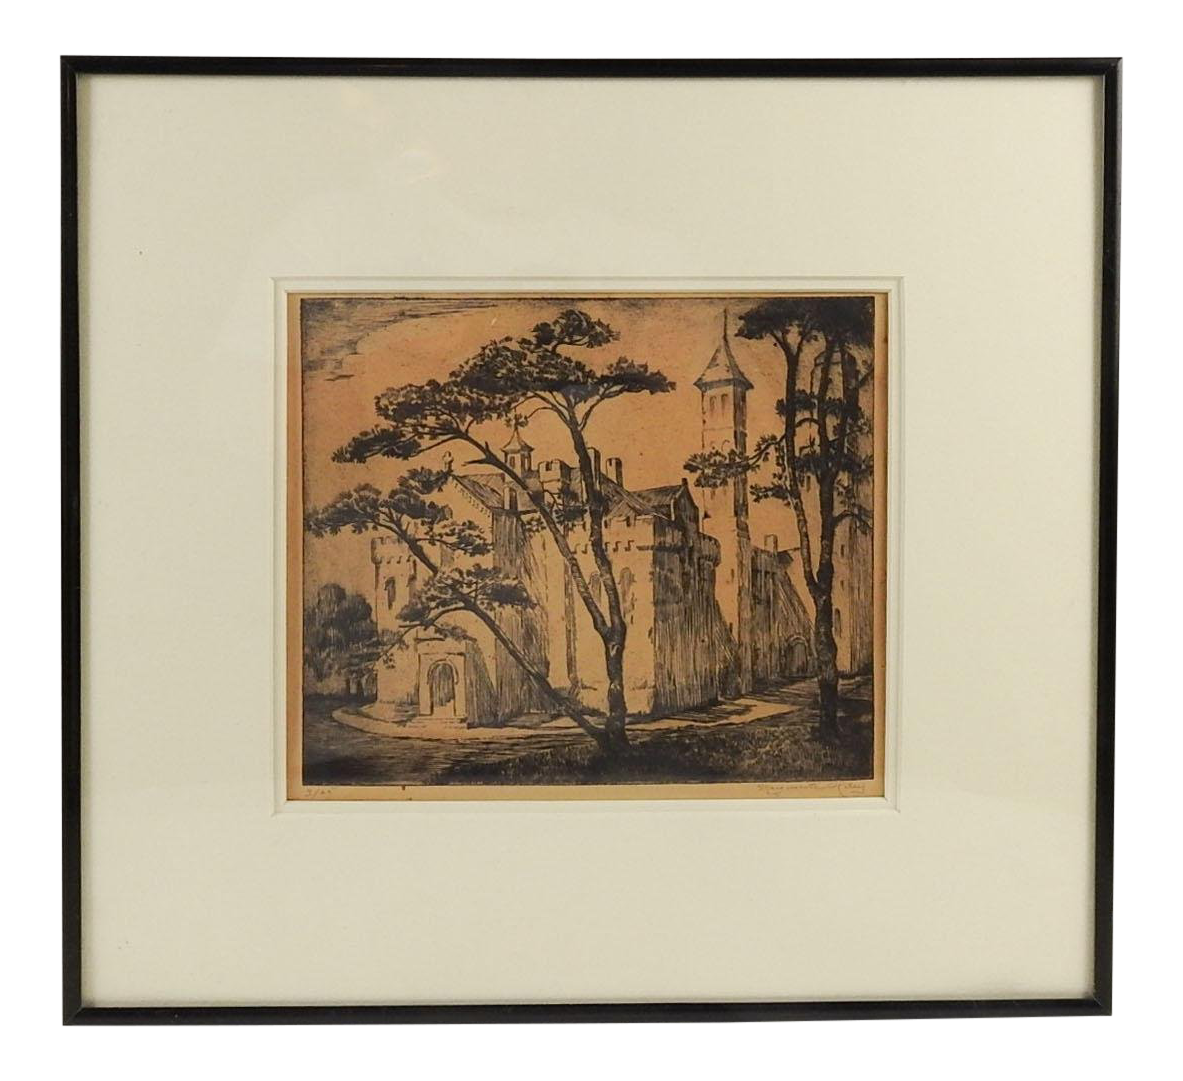 Etching drawing medieval. Castle by marguerite riley